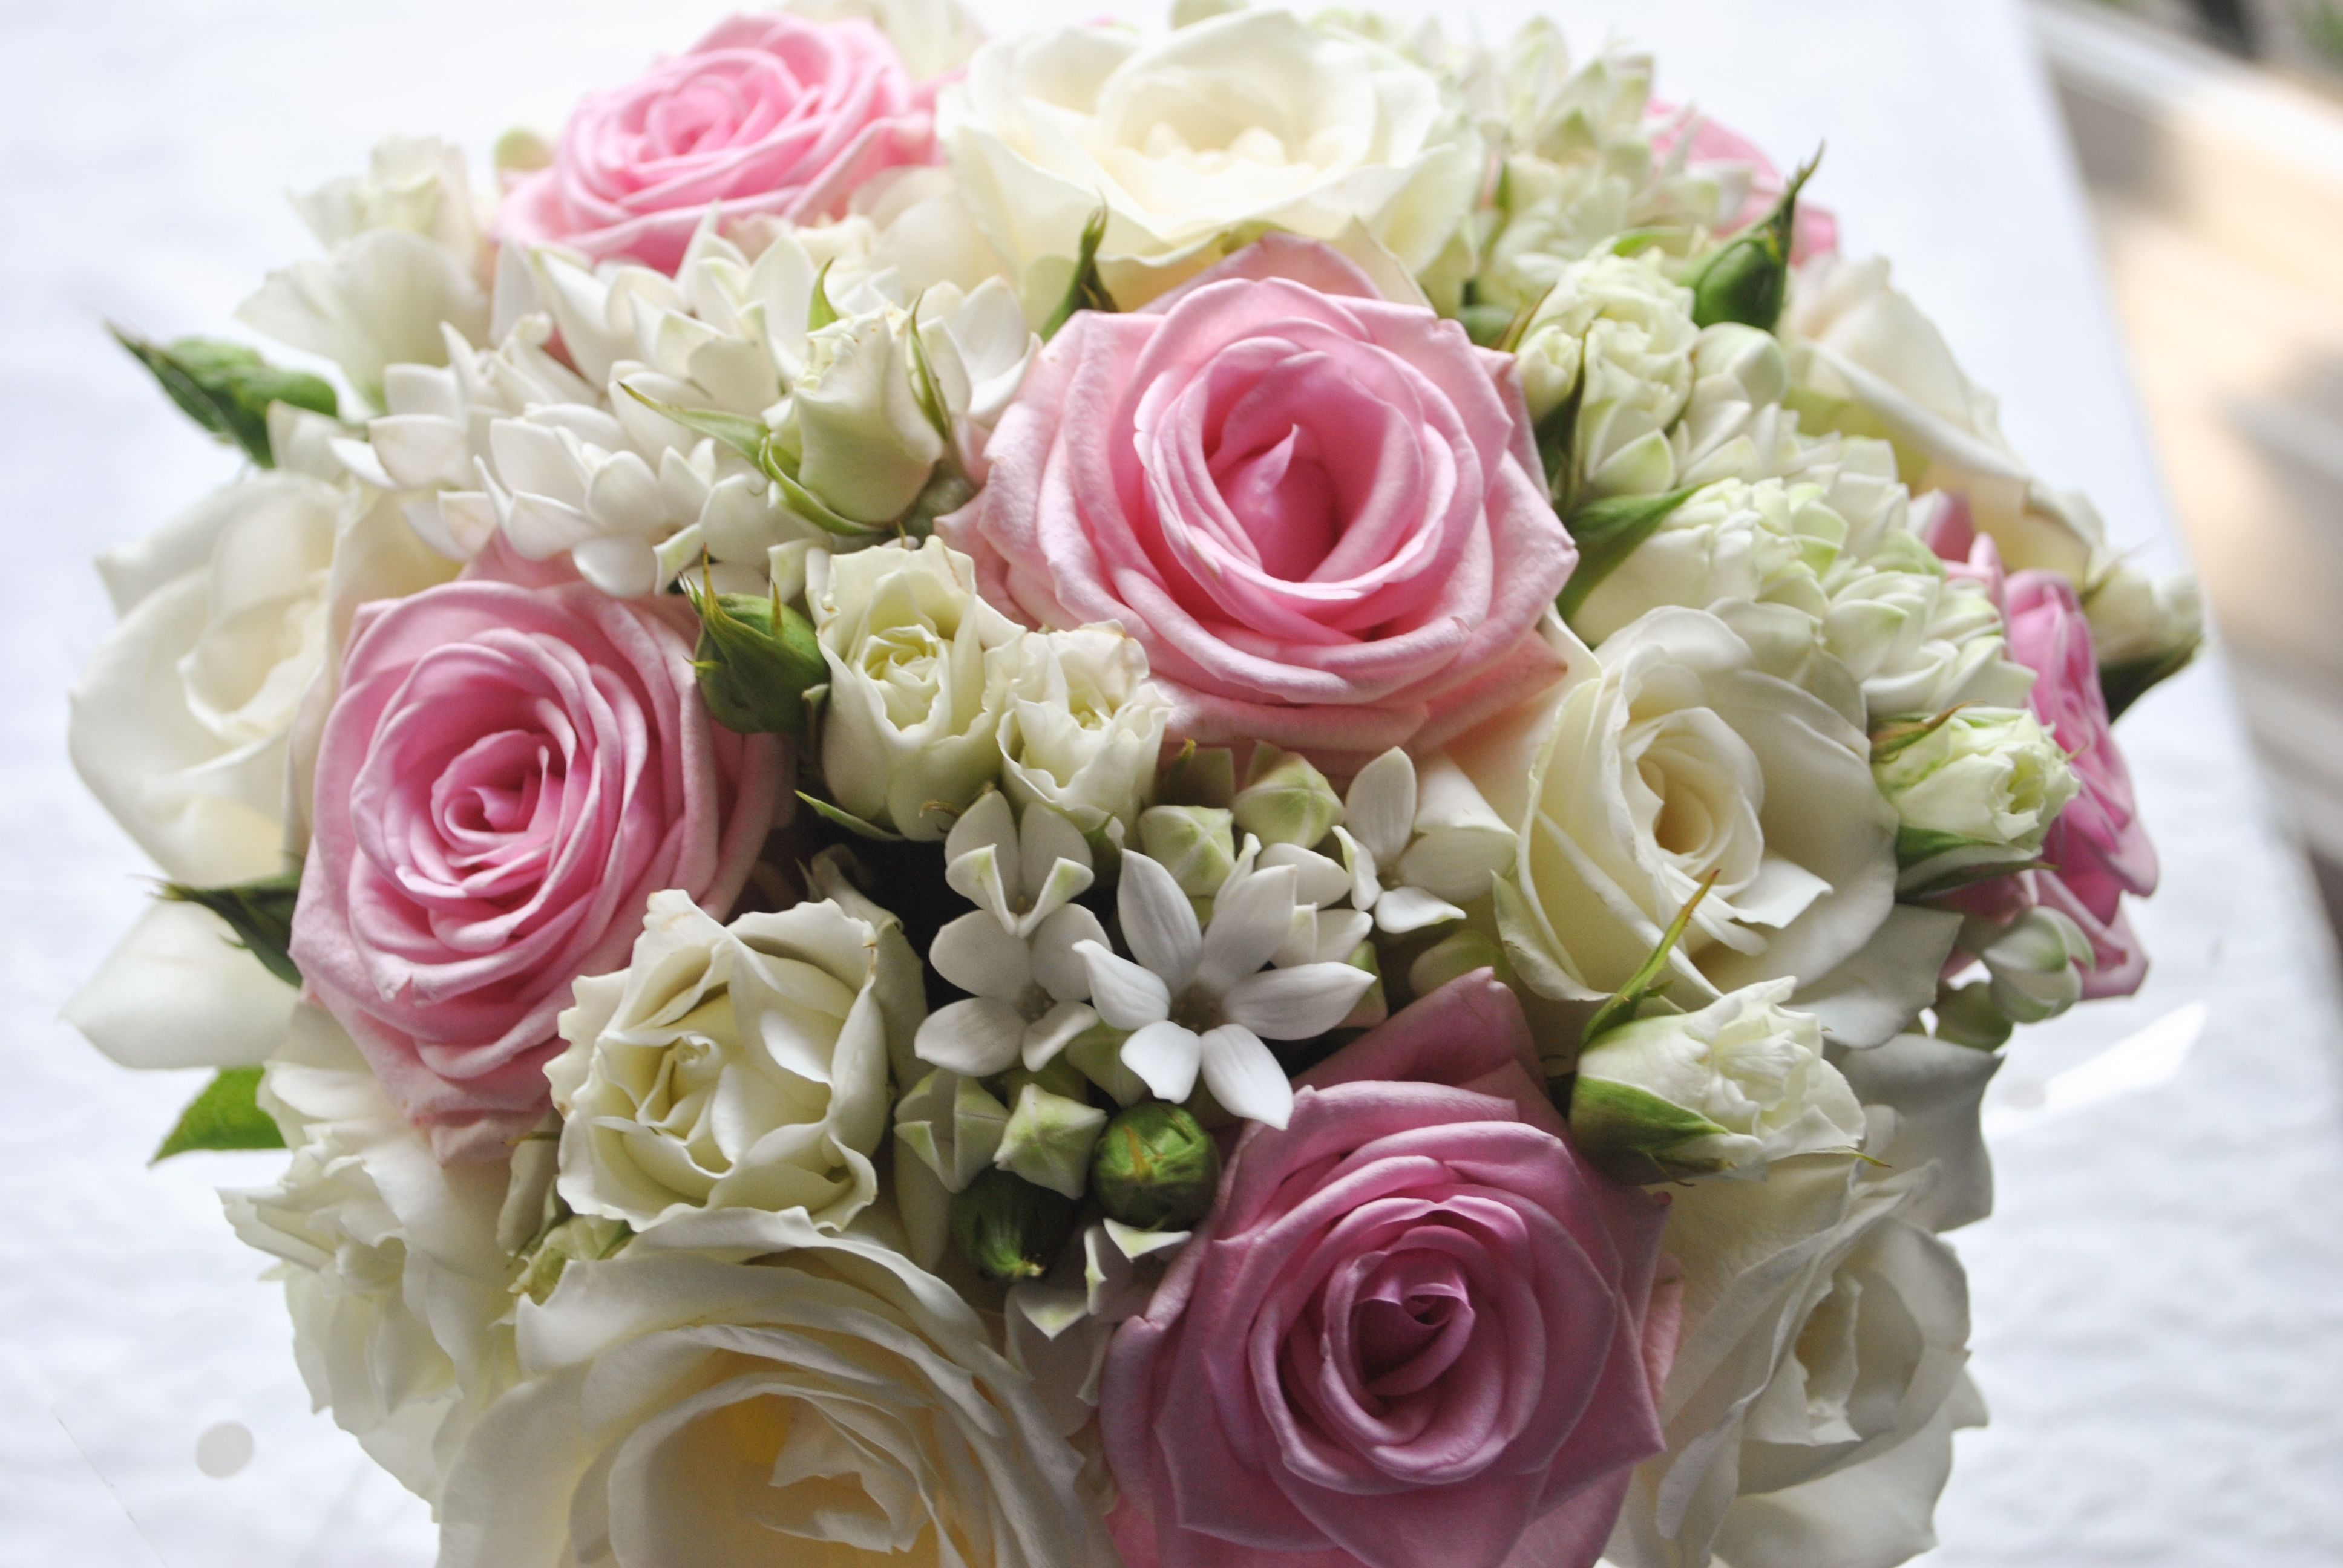 Pink And White Flowers Bouquet Wedding Pinterest White Roses